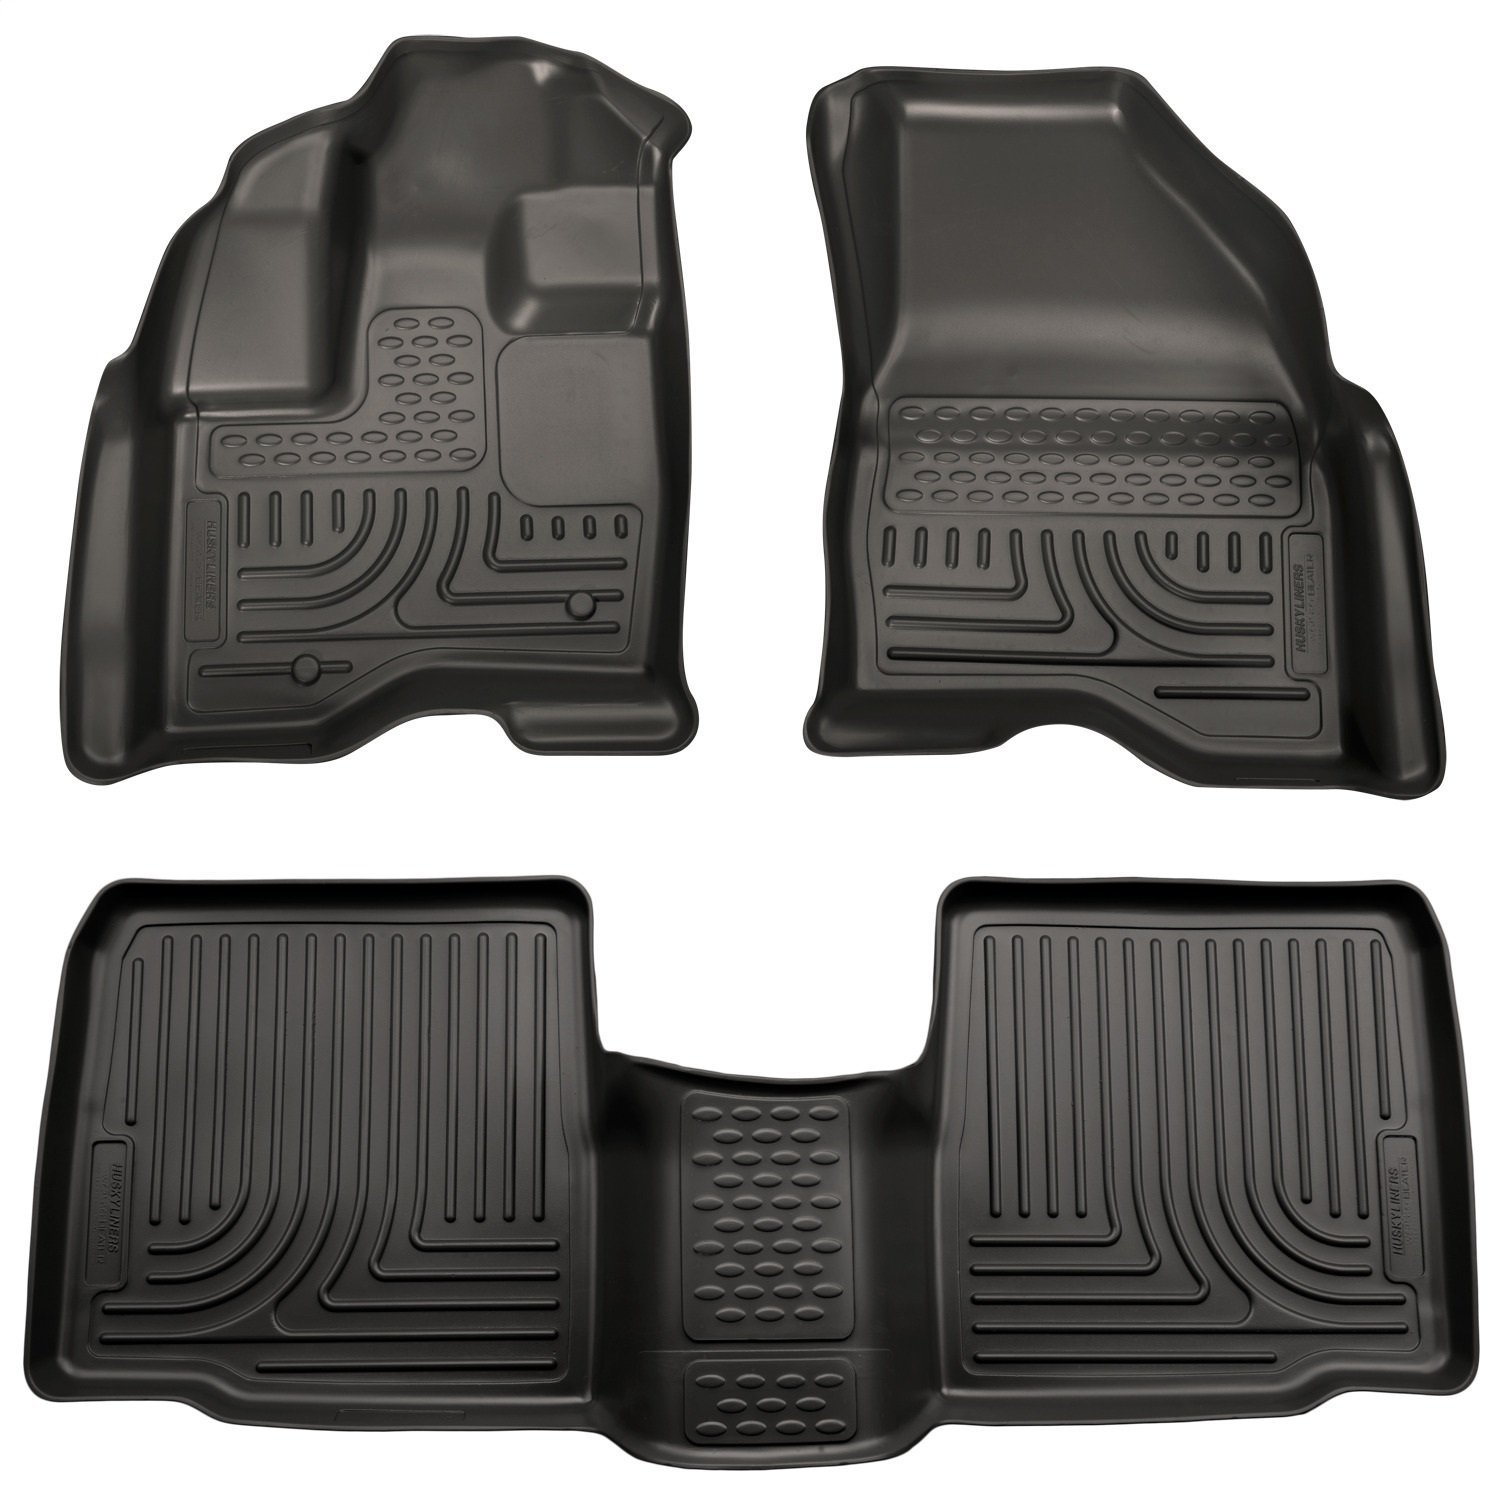 Ford explorer accessories amazon husky liners custom fit weatherbeater front and second seat floor liner for select ford explorer models fandeluxe Image collections